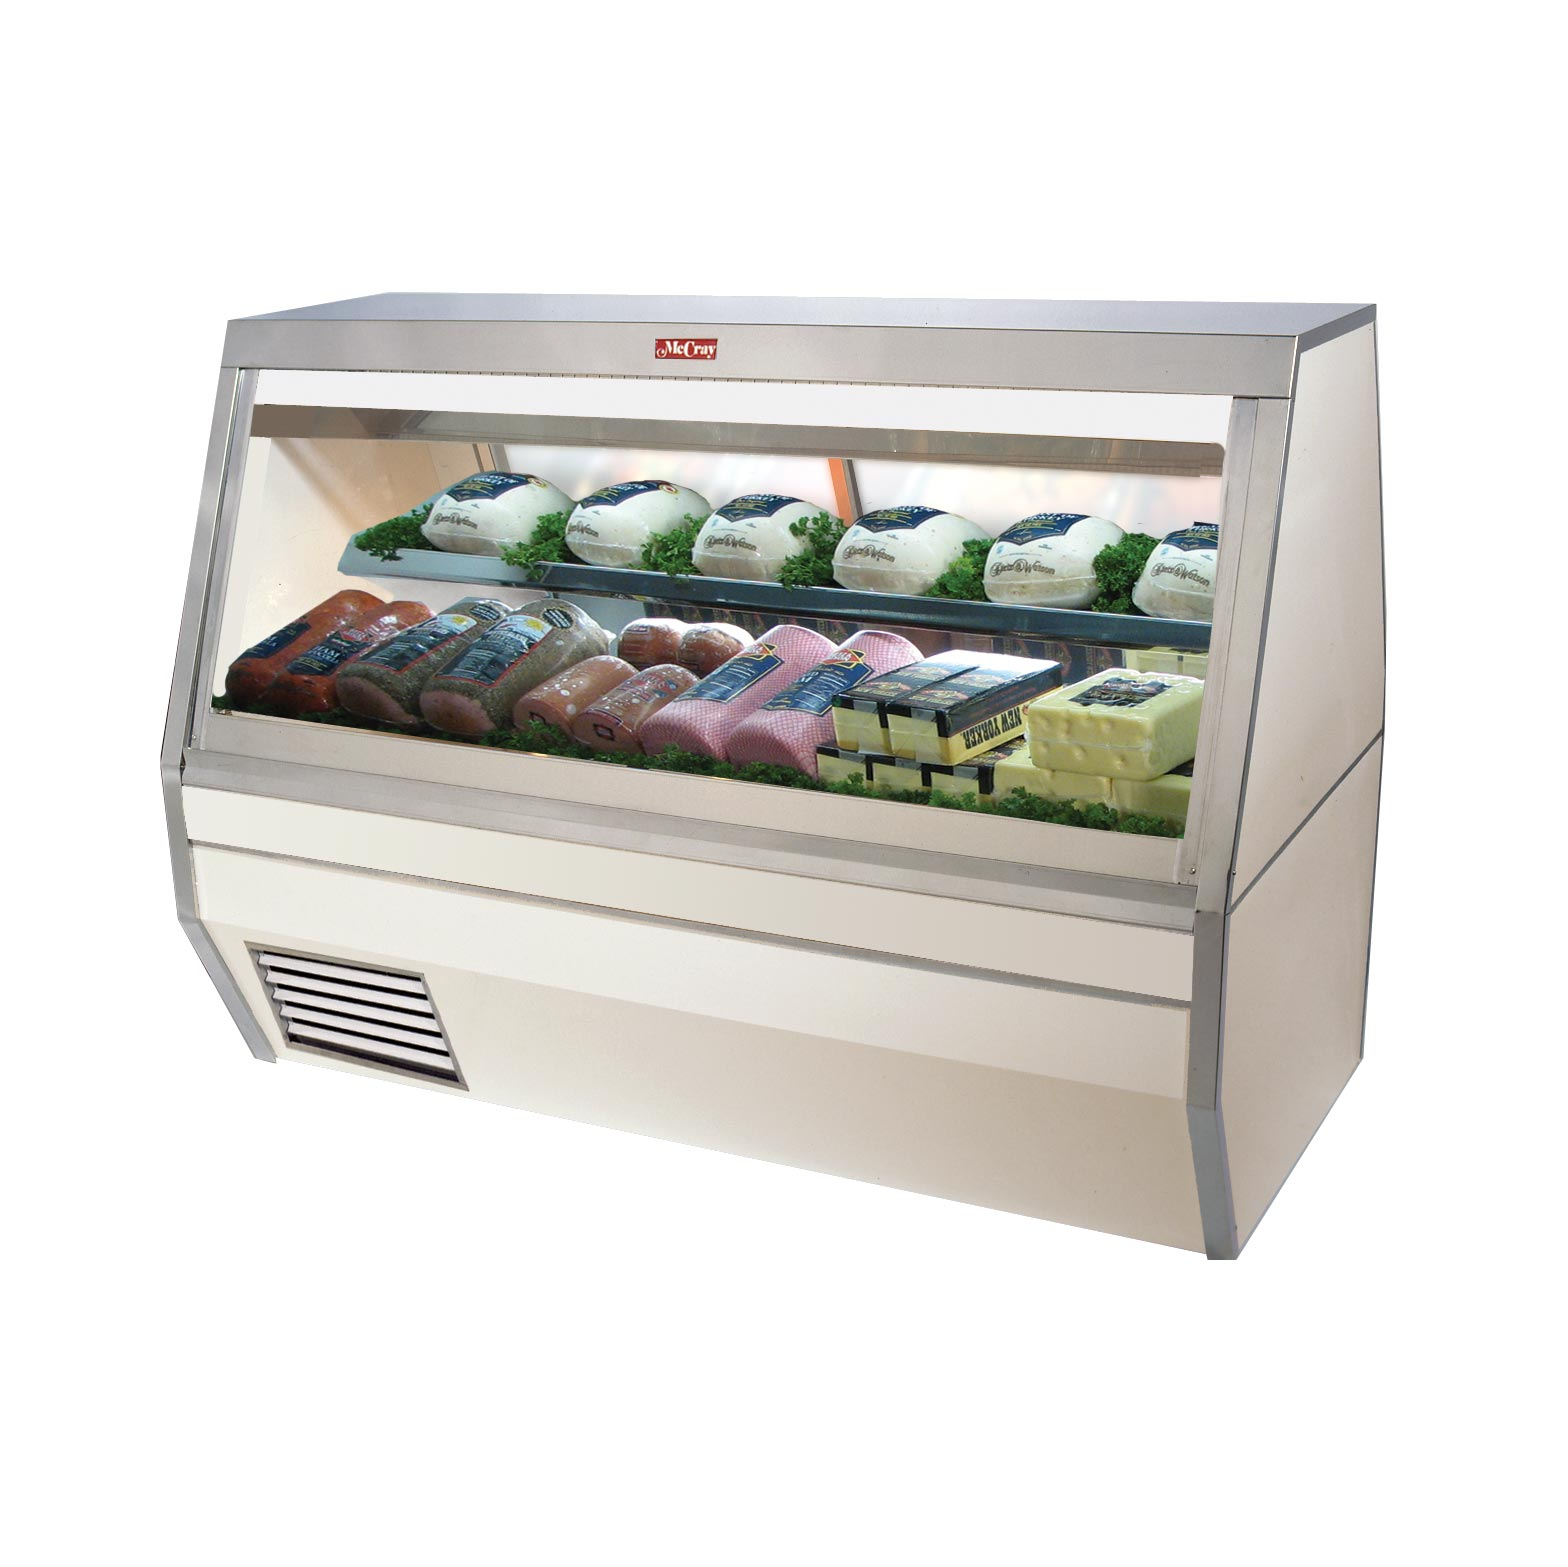 Howard-McCray SC-CDS35-4PT-LED display case, refrigerated deli